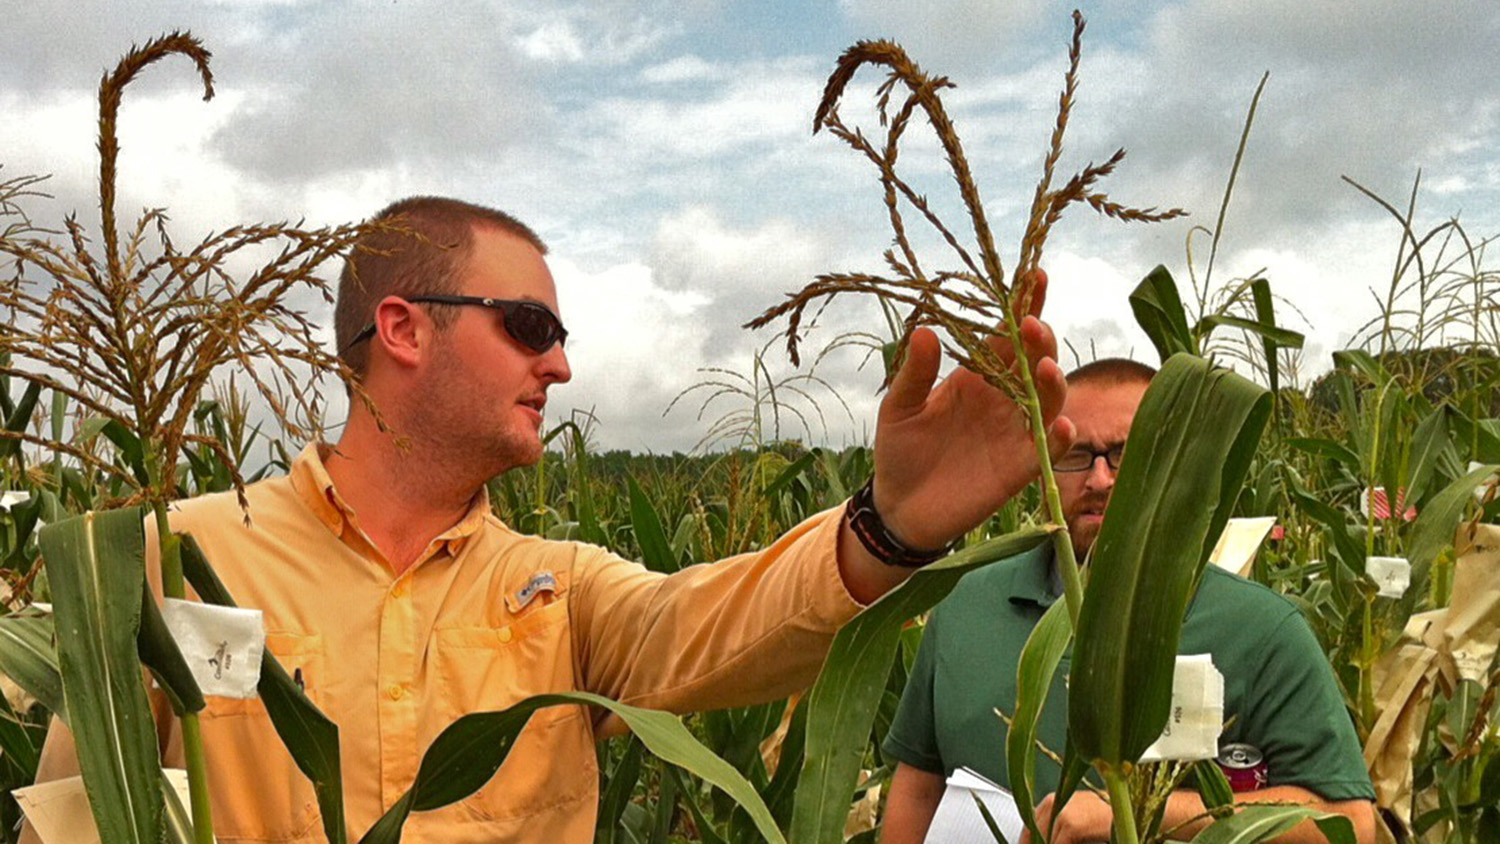 Zachary Jones in corn field talking with another man.